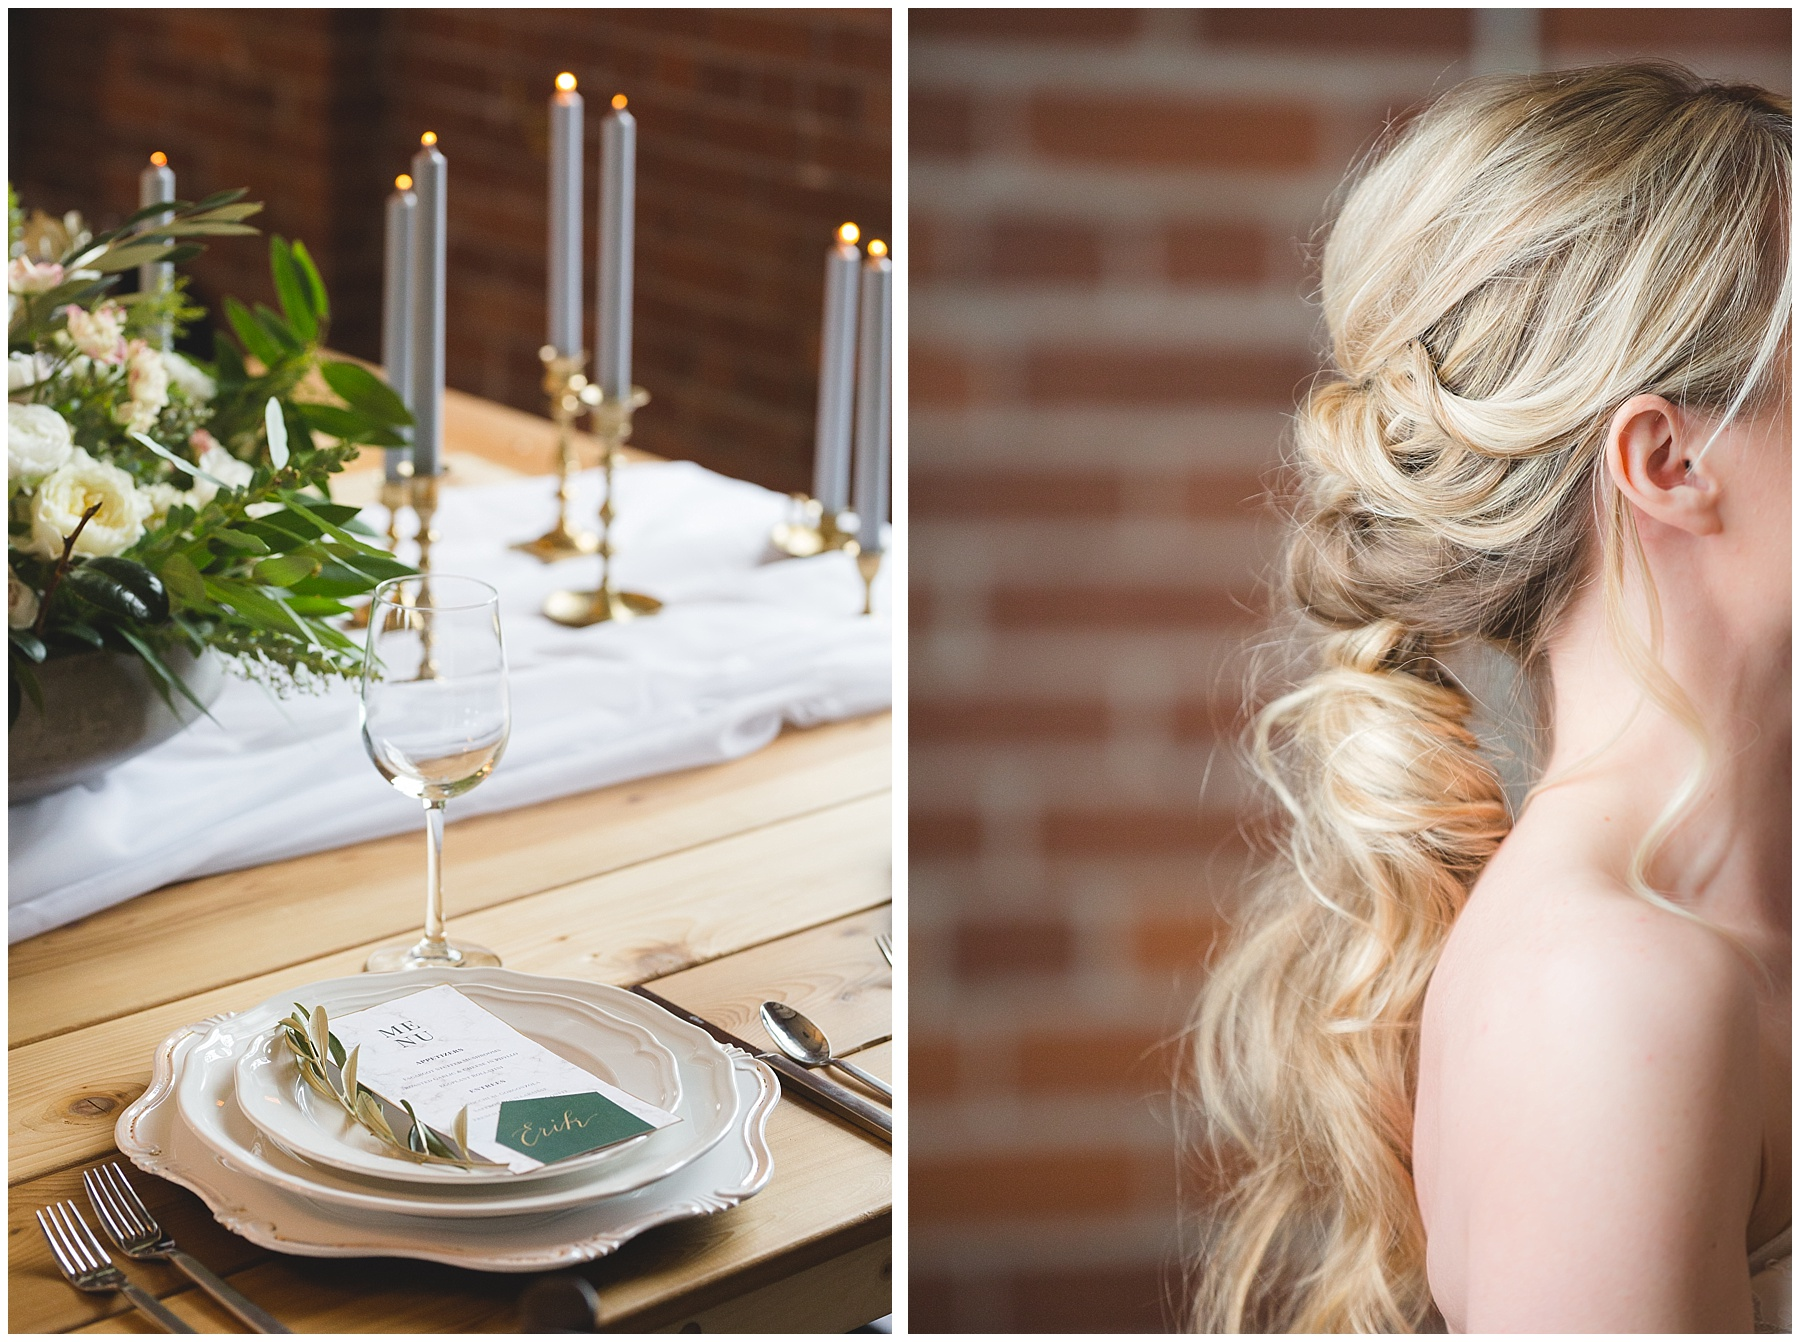 Romantic Wedding Hair Style Inspiration by Katie Kerr Calgary